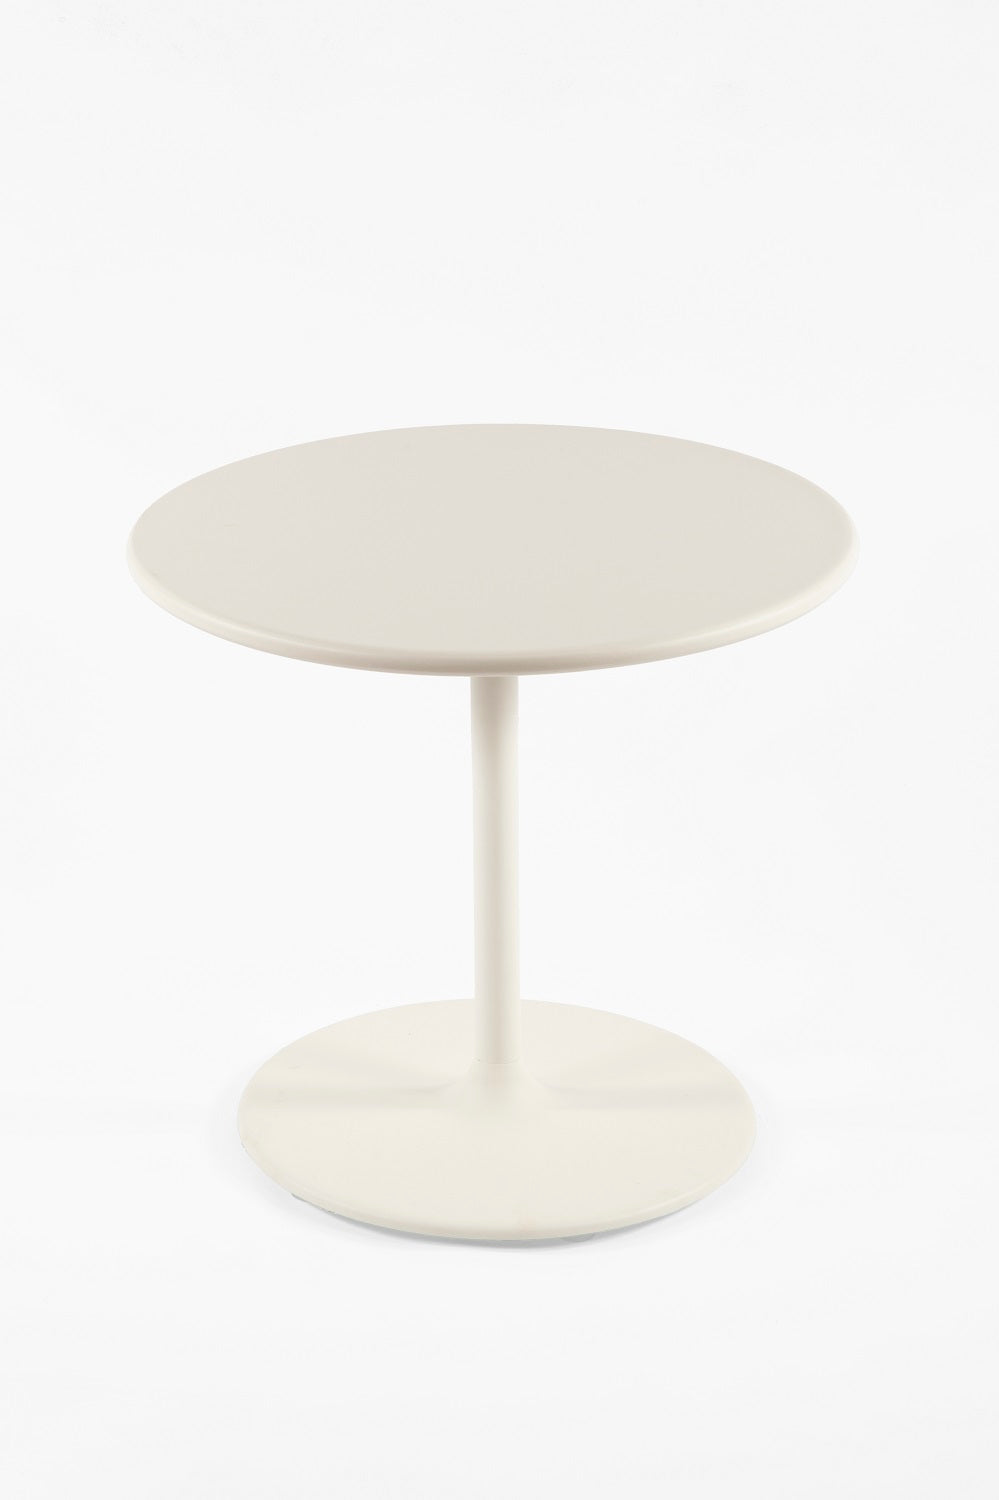 The Tiel Side Table